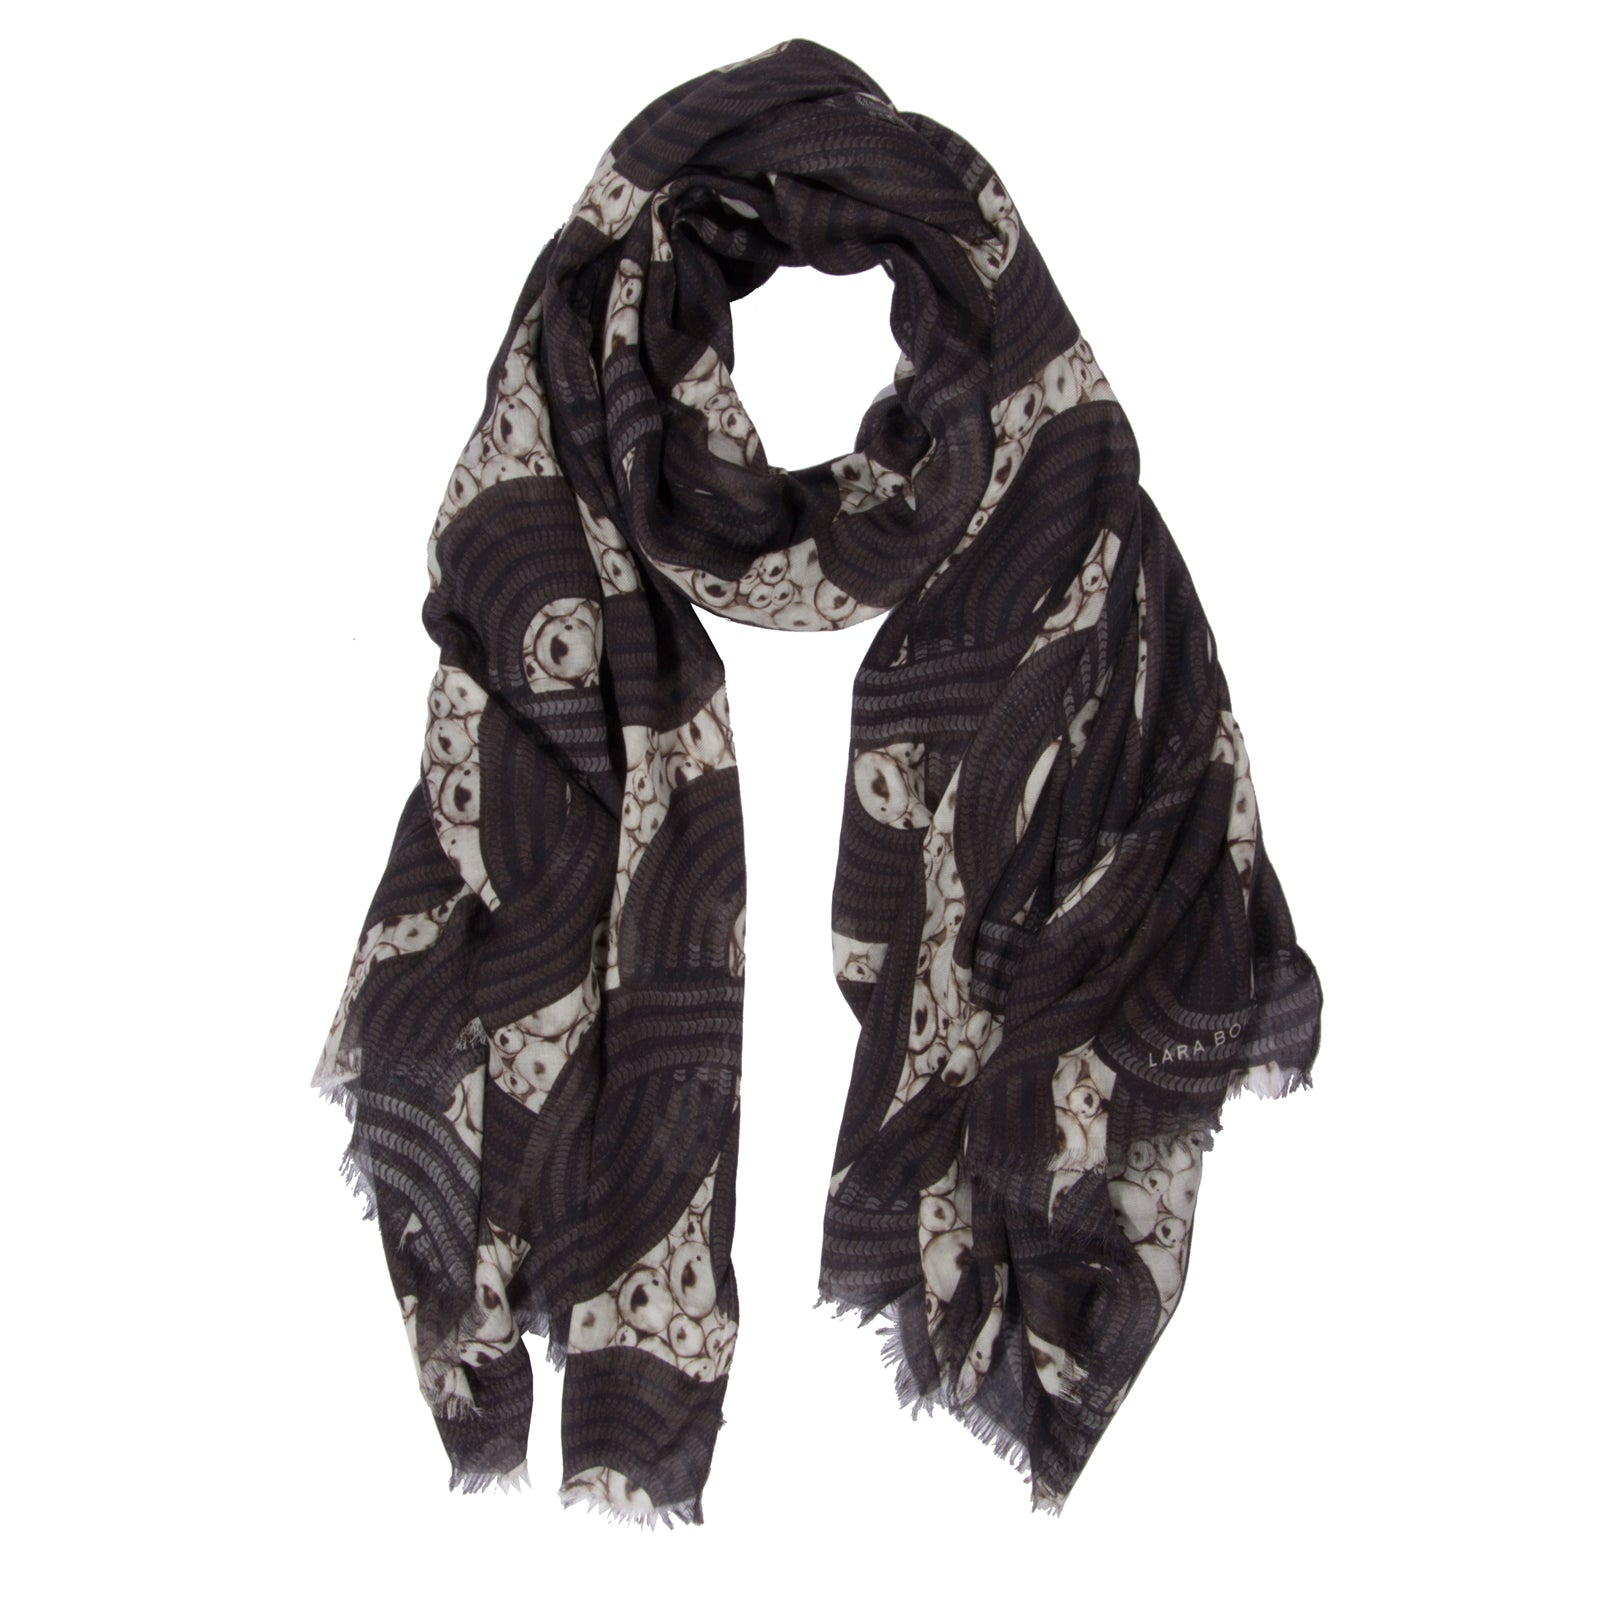 Lunar Eclipse Scarf </br>Black and White